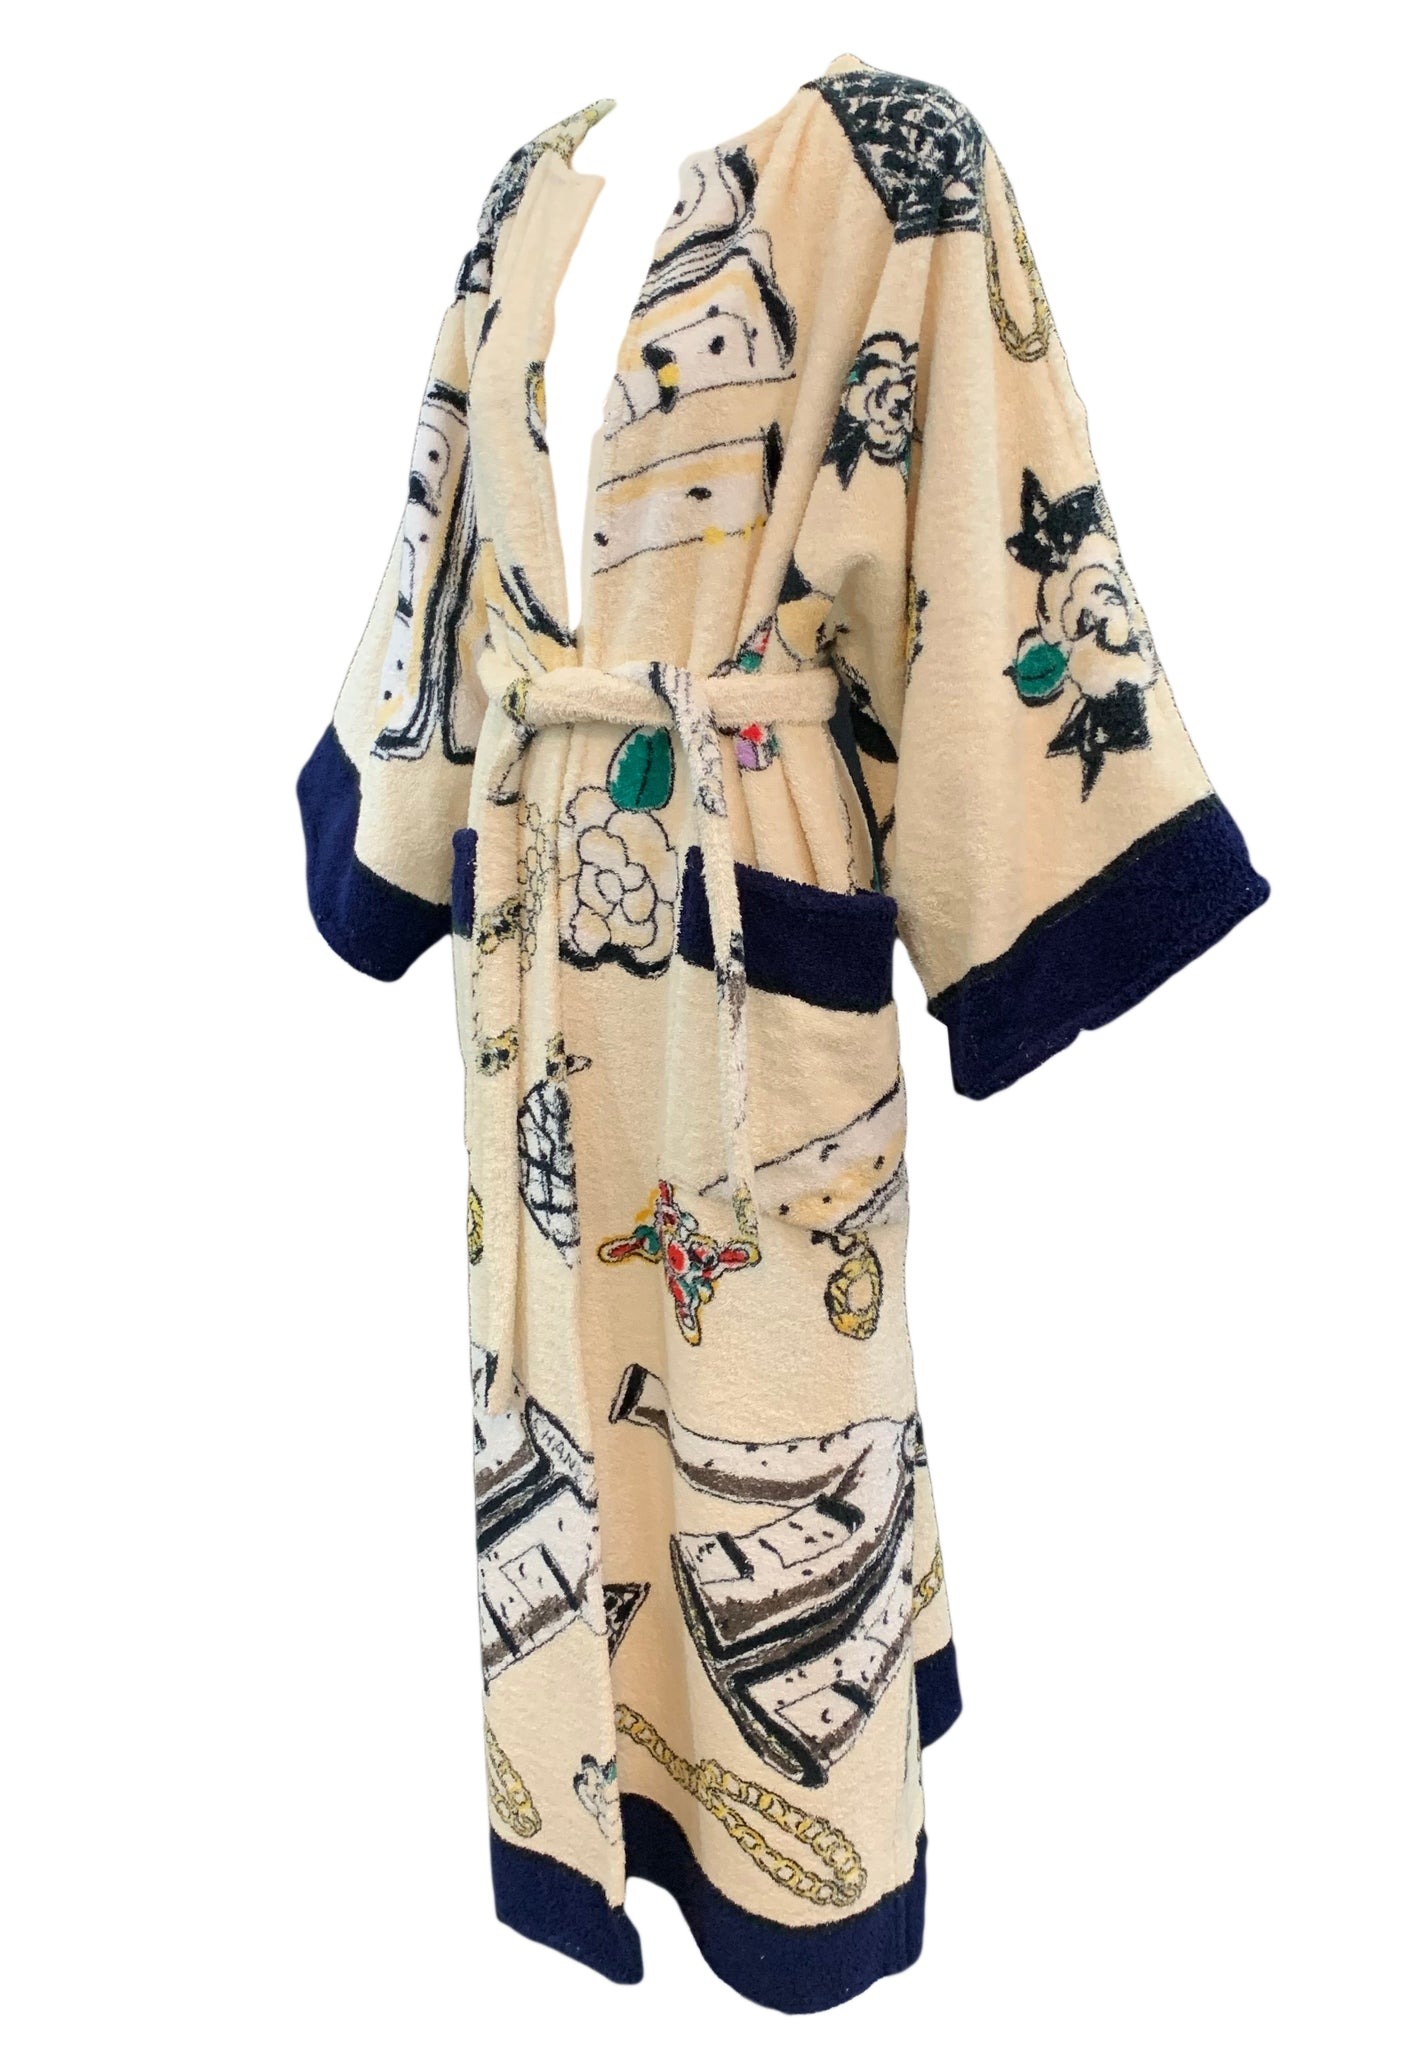 Rare Chanel Terry Cloth  Robe with Iconic Print Side 2 of 5